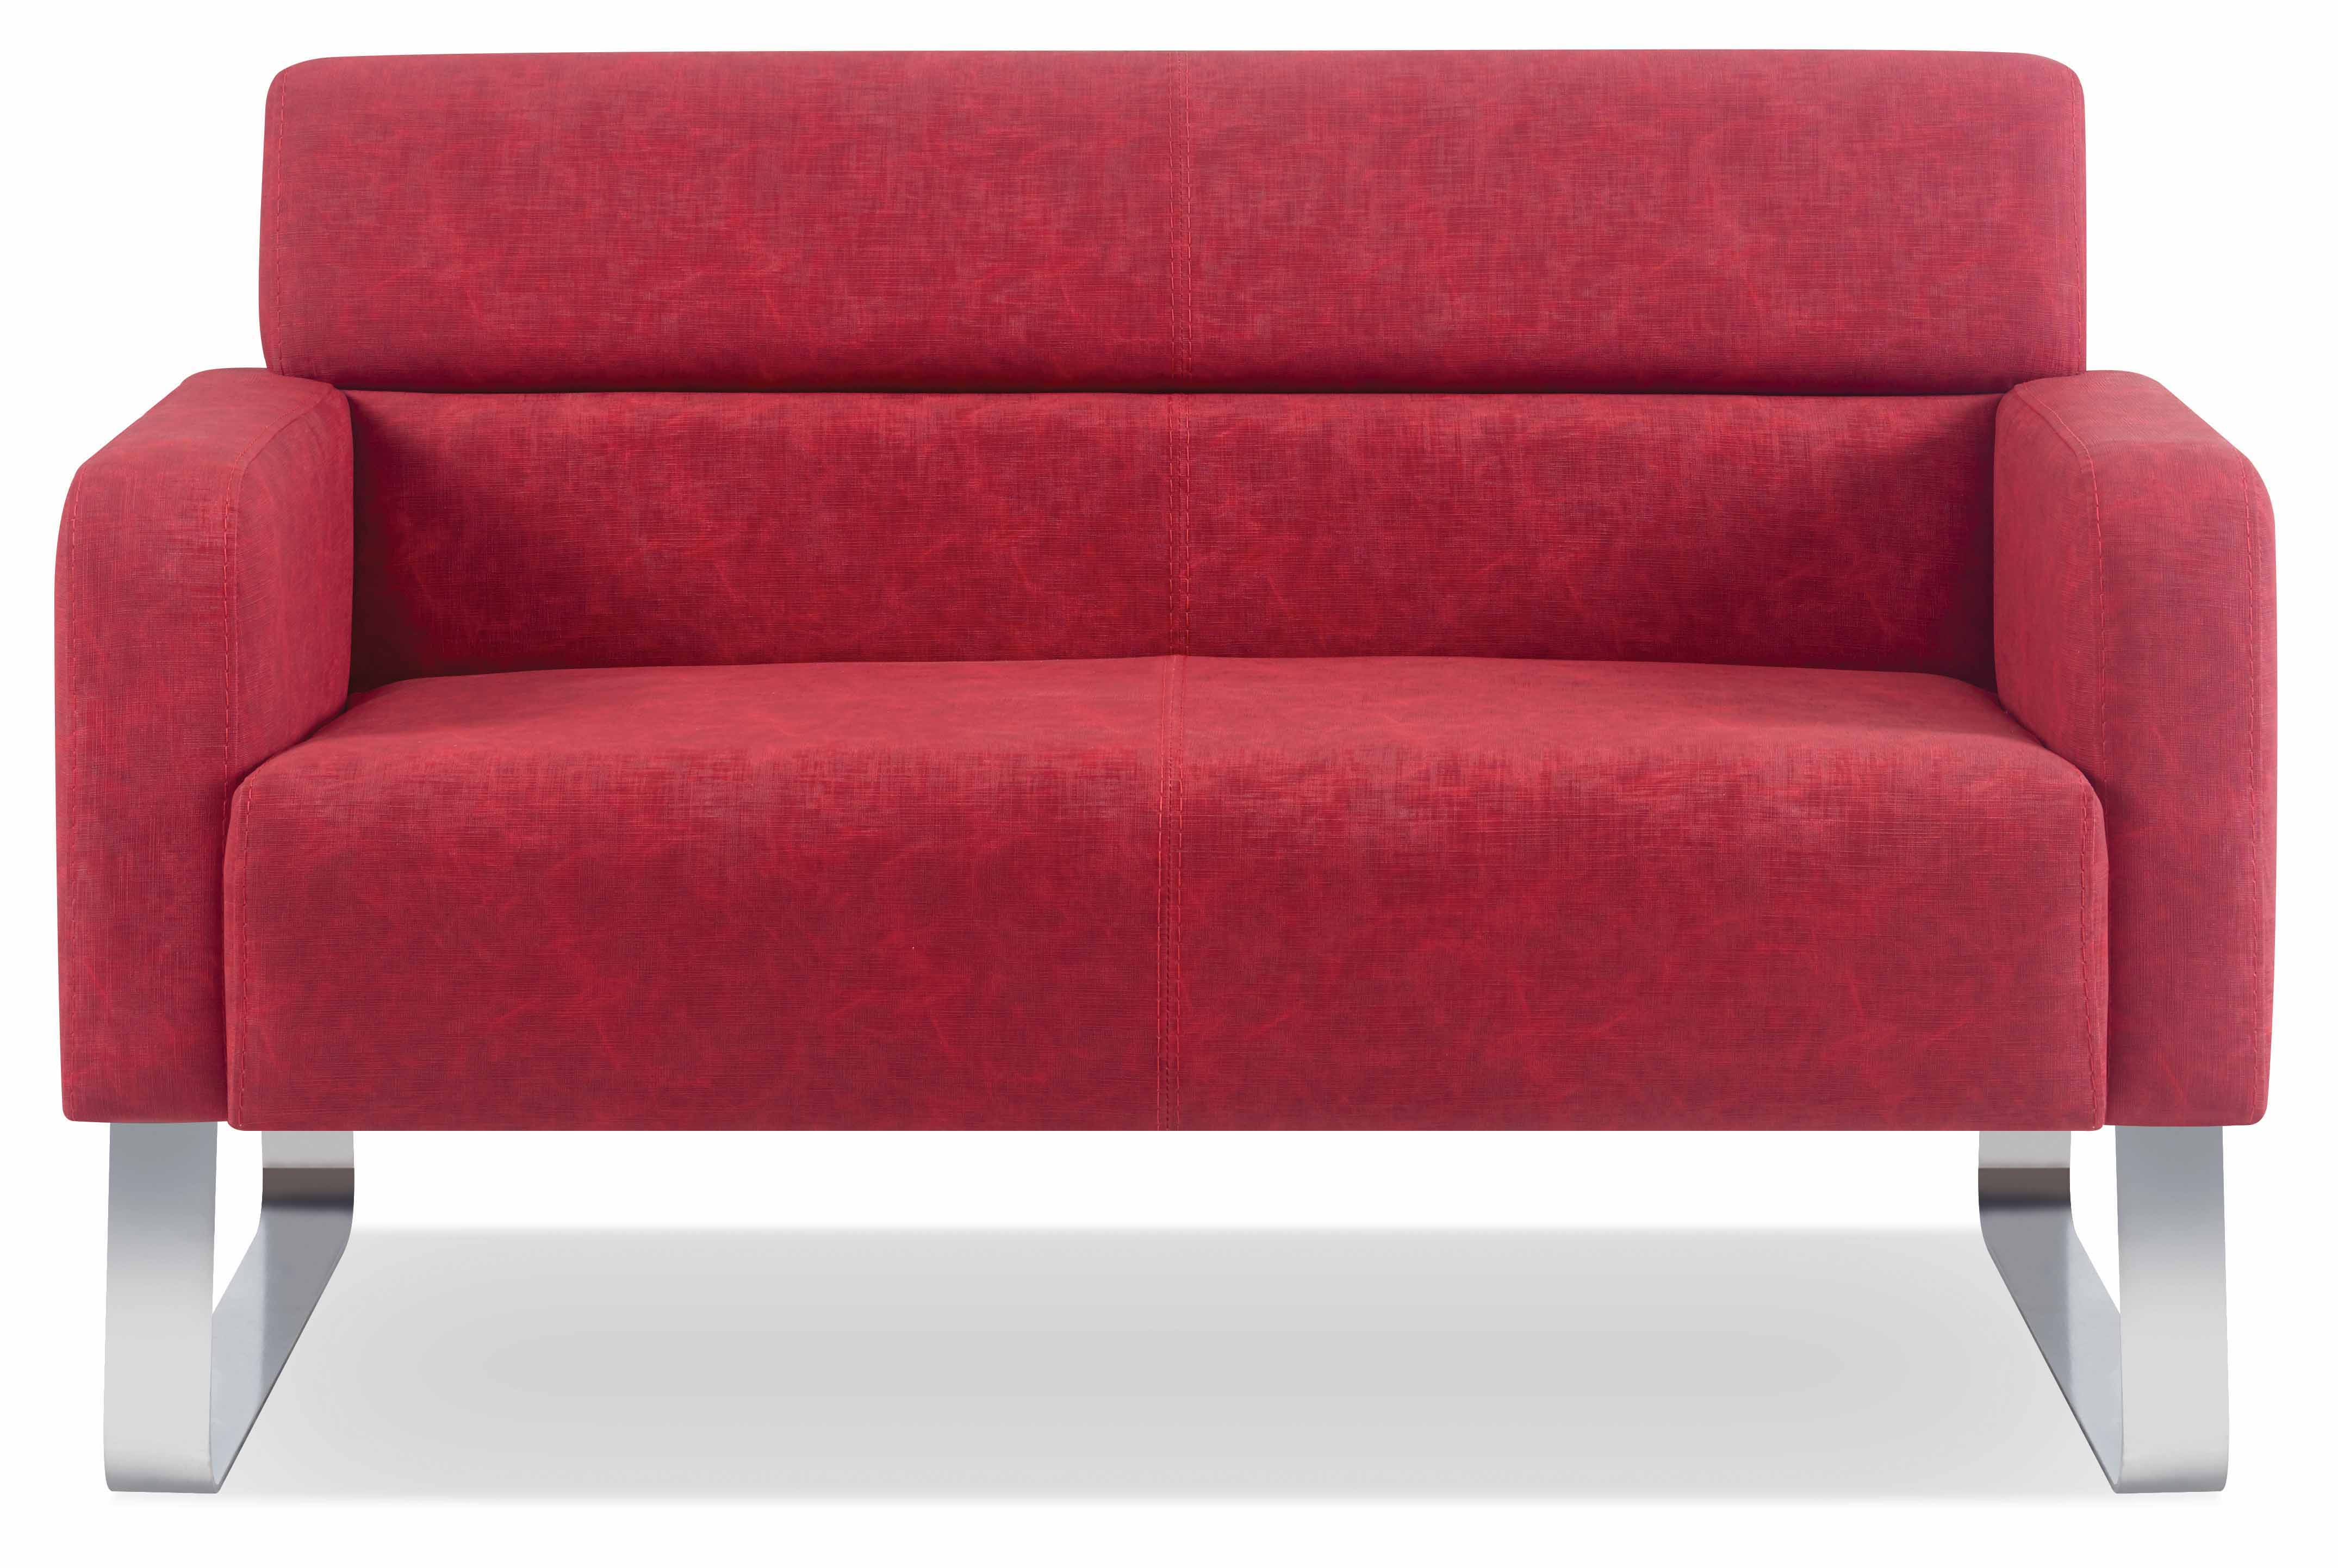 rocco sofa 2 sitzer bordeaux g nstig kaufen m bel star. Black Bedroom Furniture Sets. Home Design Ideas